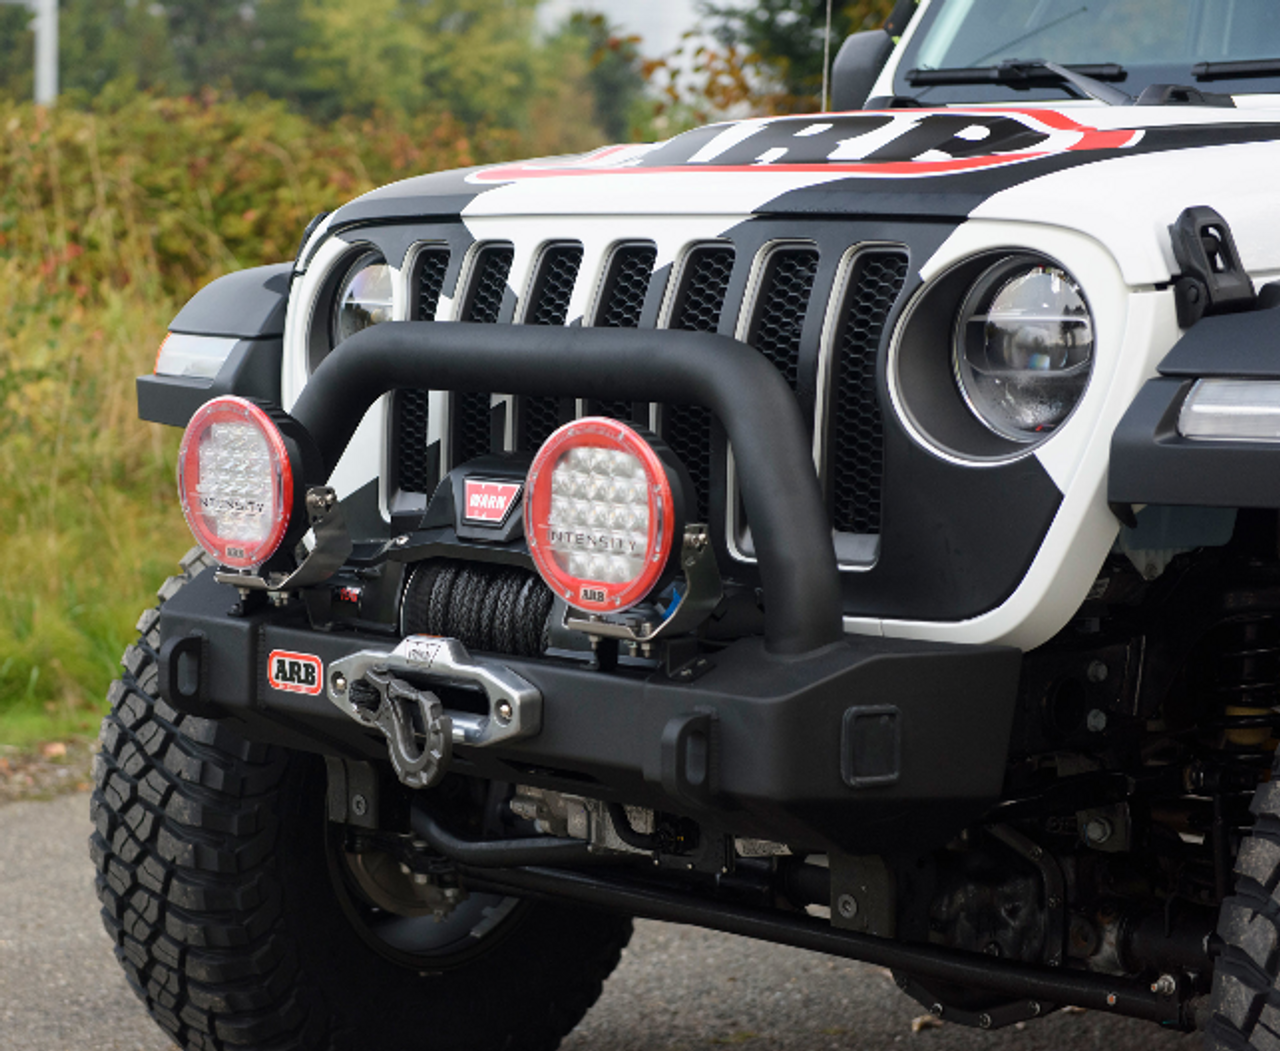 ARB 3450450 Deluxe Stubby Front Bumper for Jeep Wrangler JL & Gladiator JT 2018+